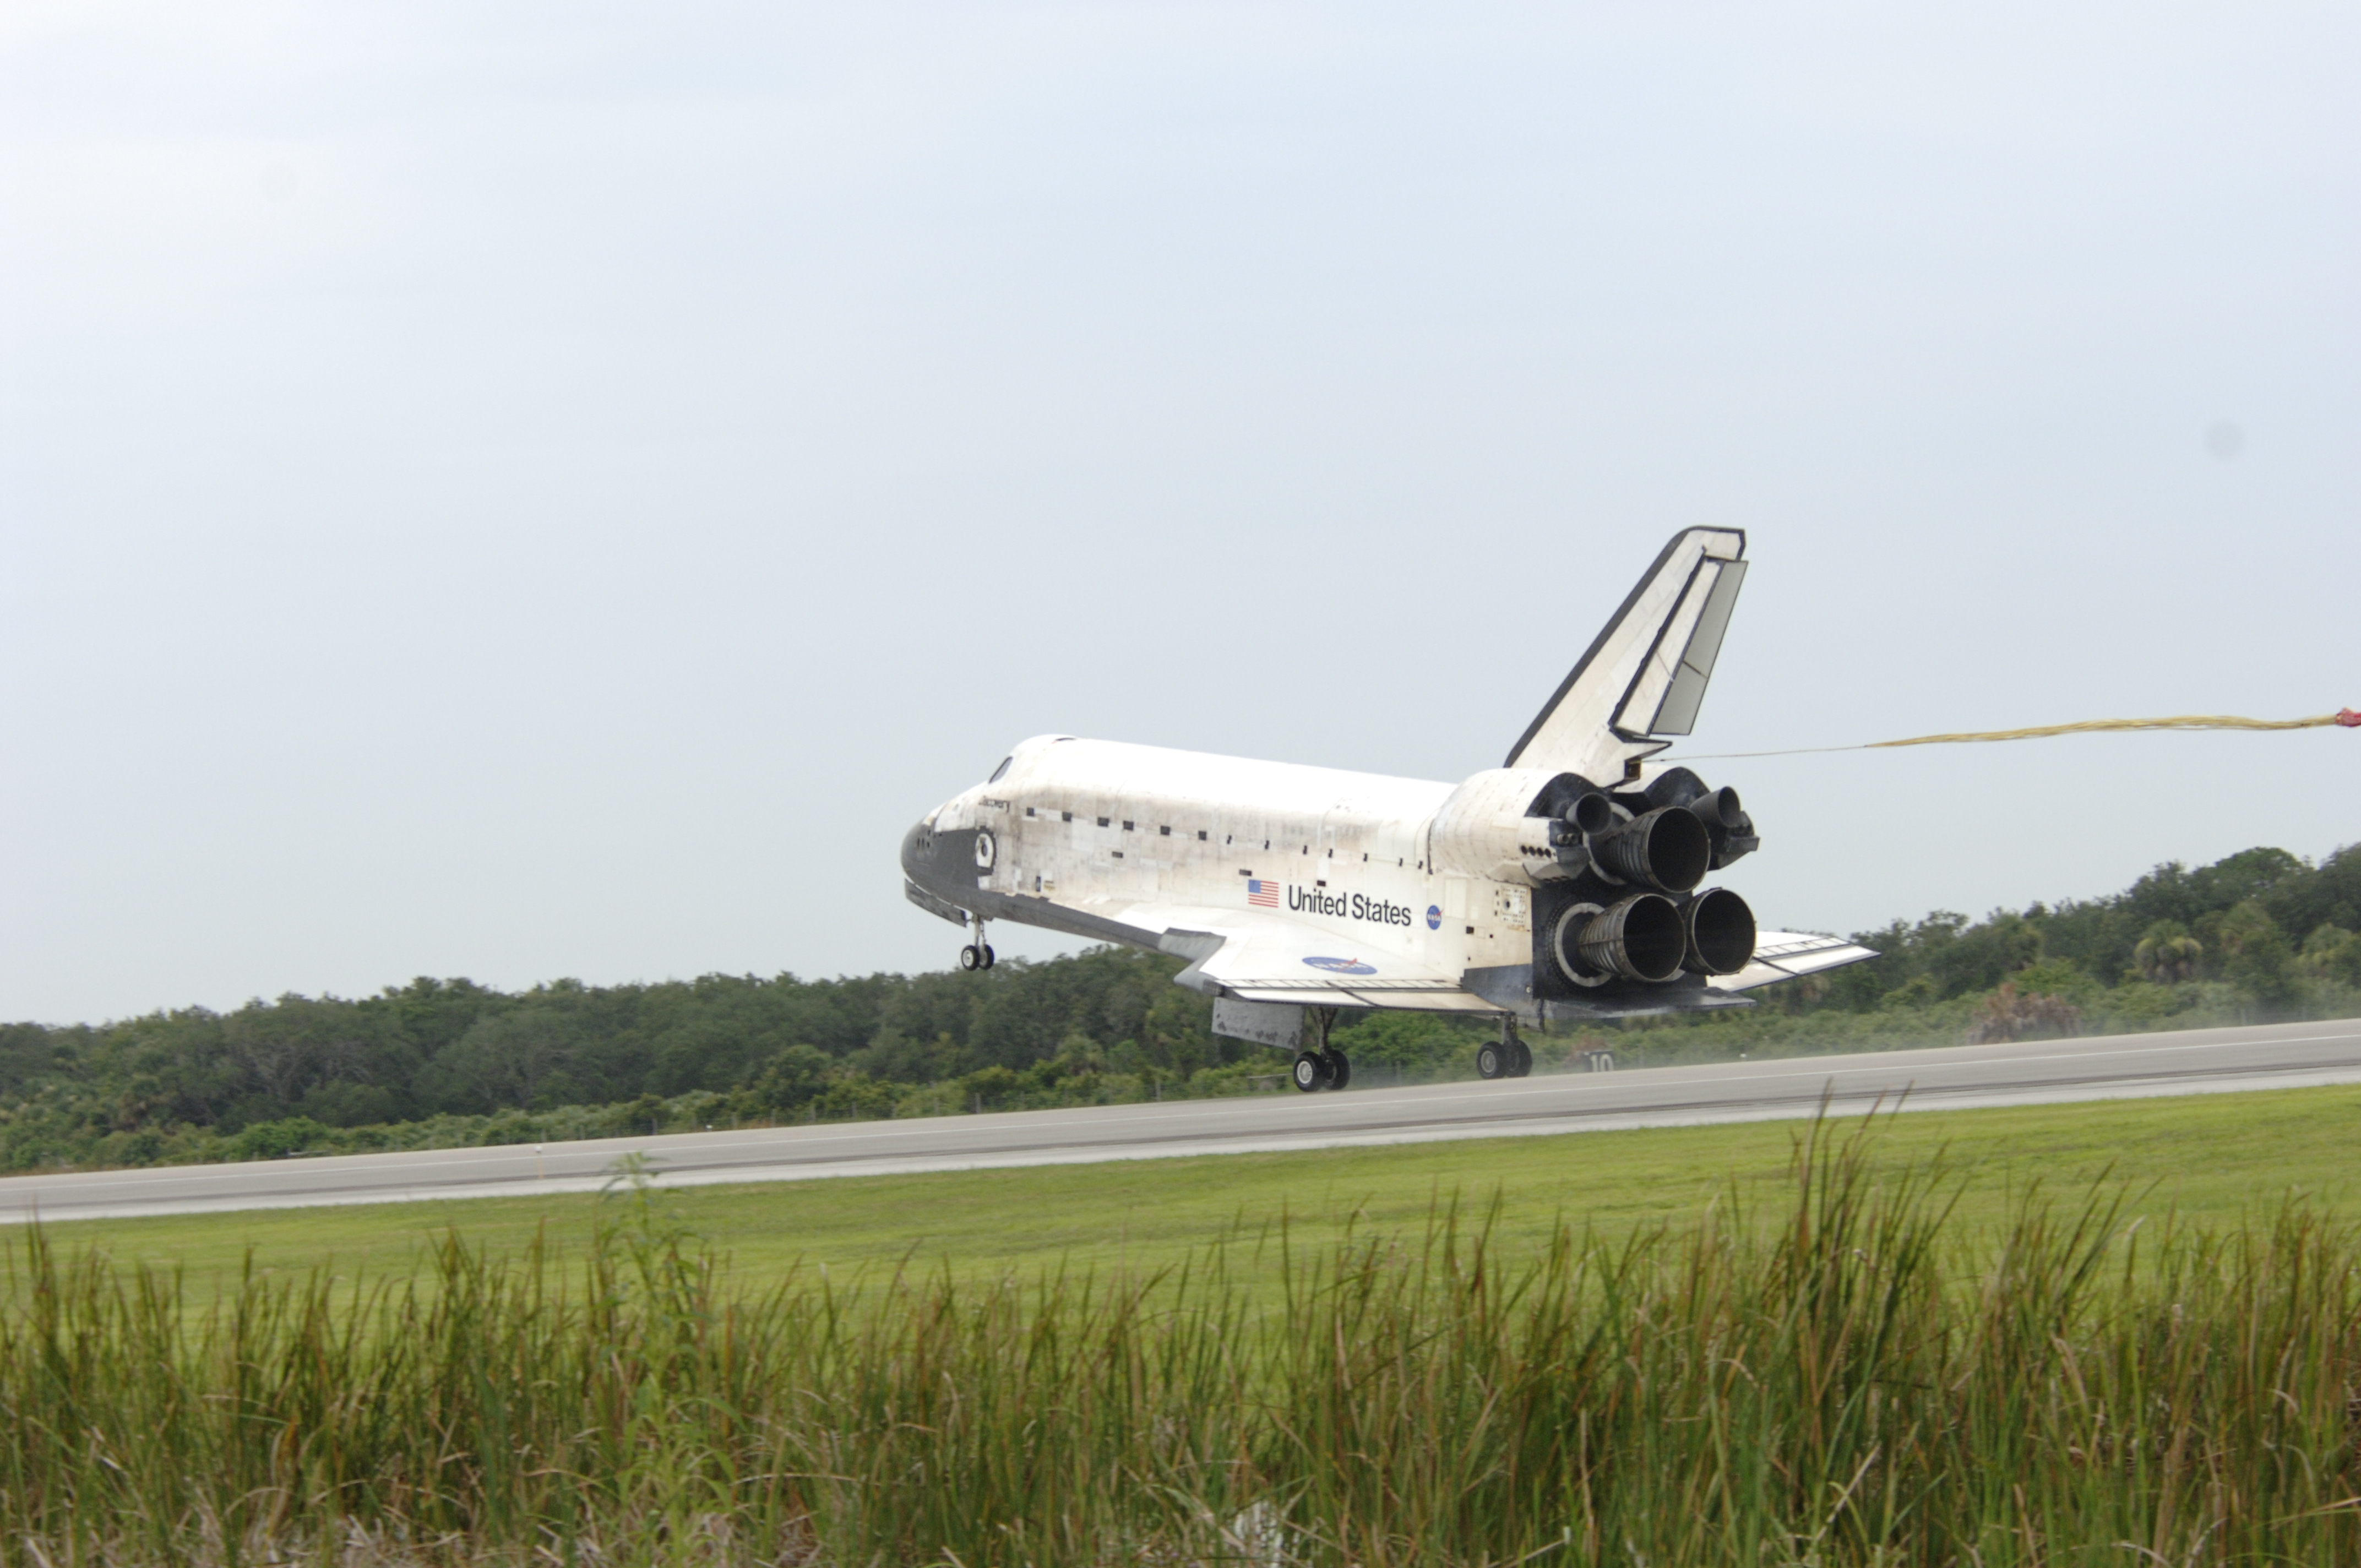 STS-121 - EOM